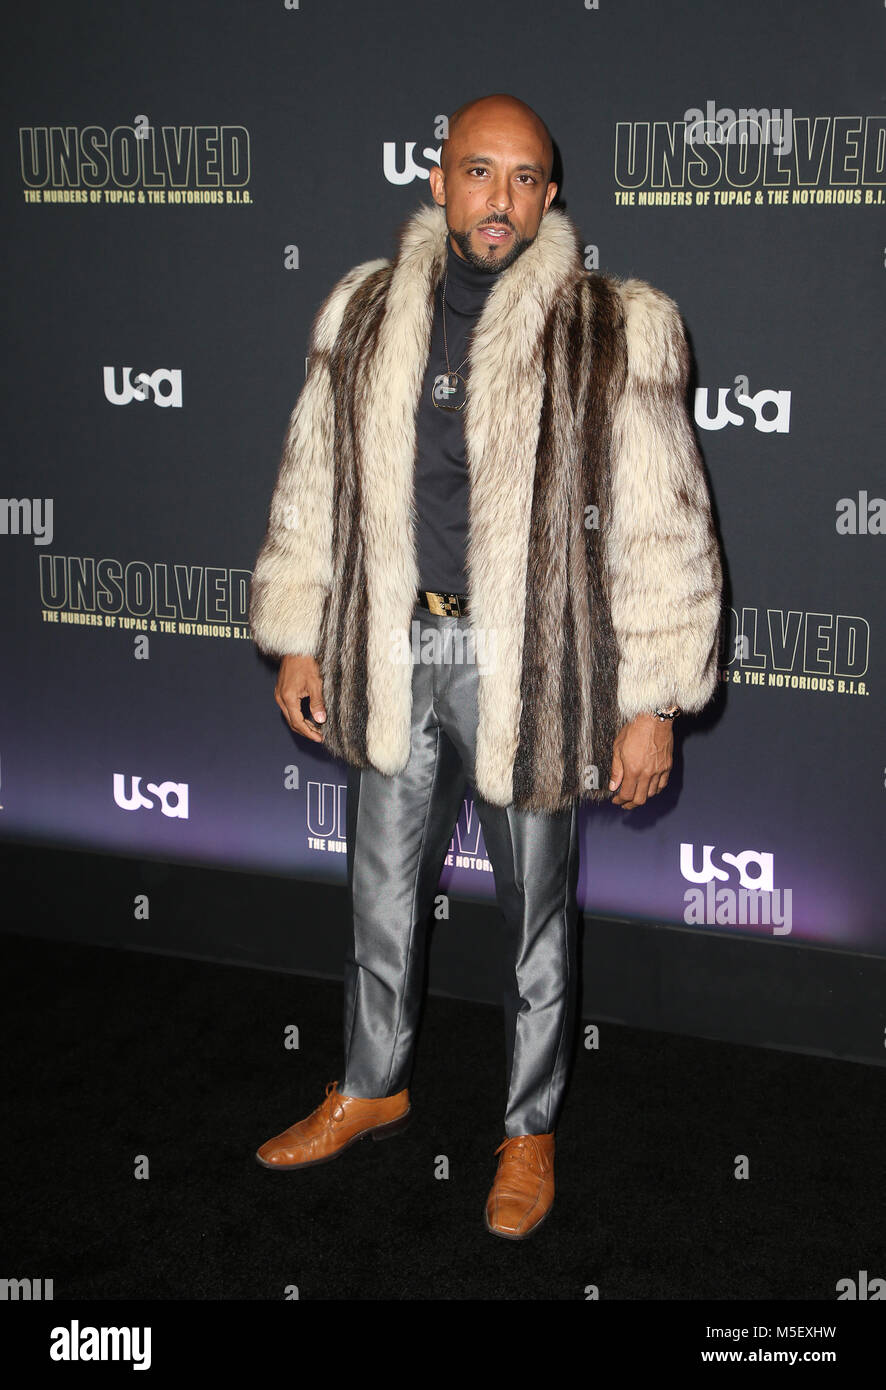 HOLLYWOOD, CA - FEBRUARY 22: David Bianchi, at Premiere Of USA Stock